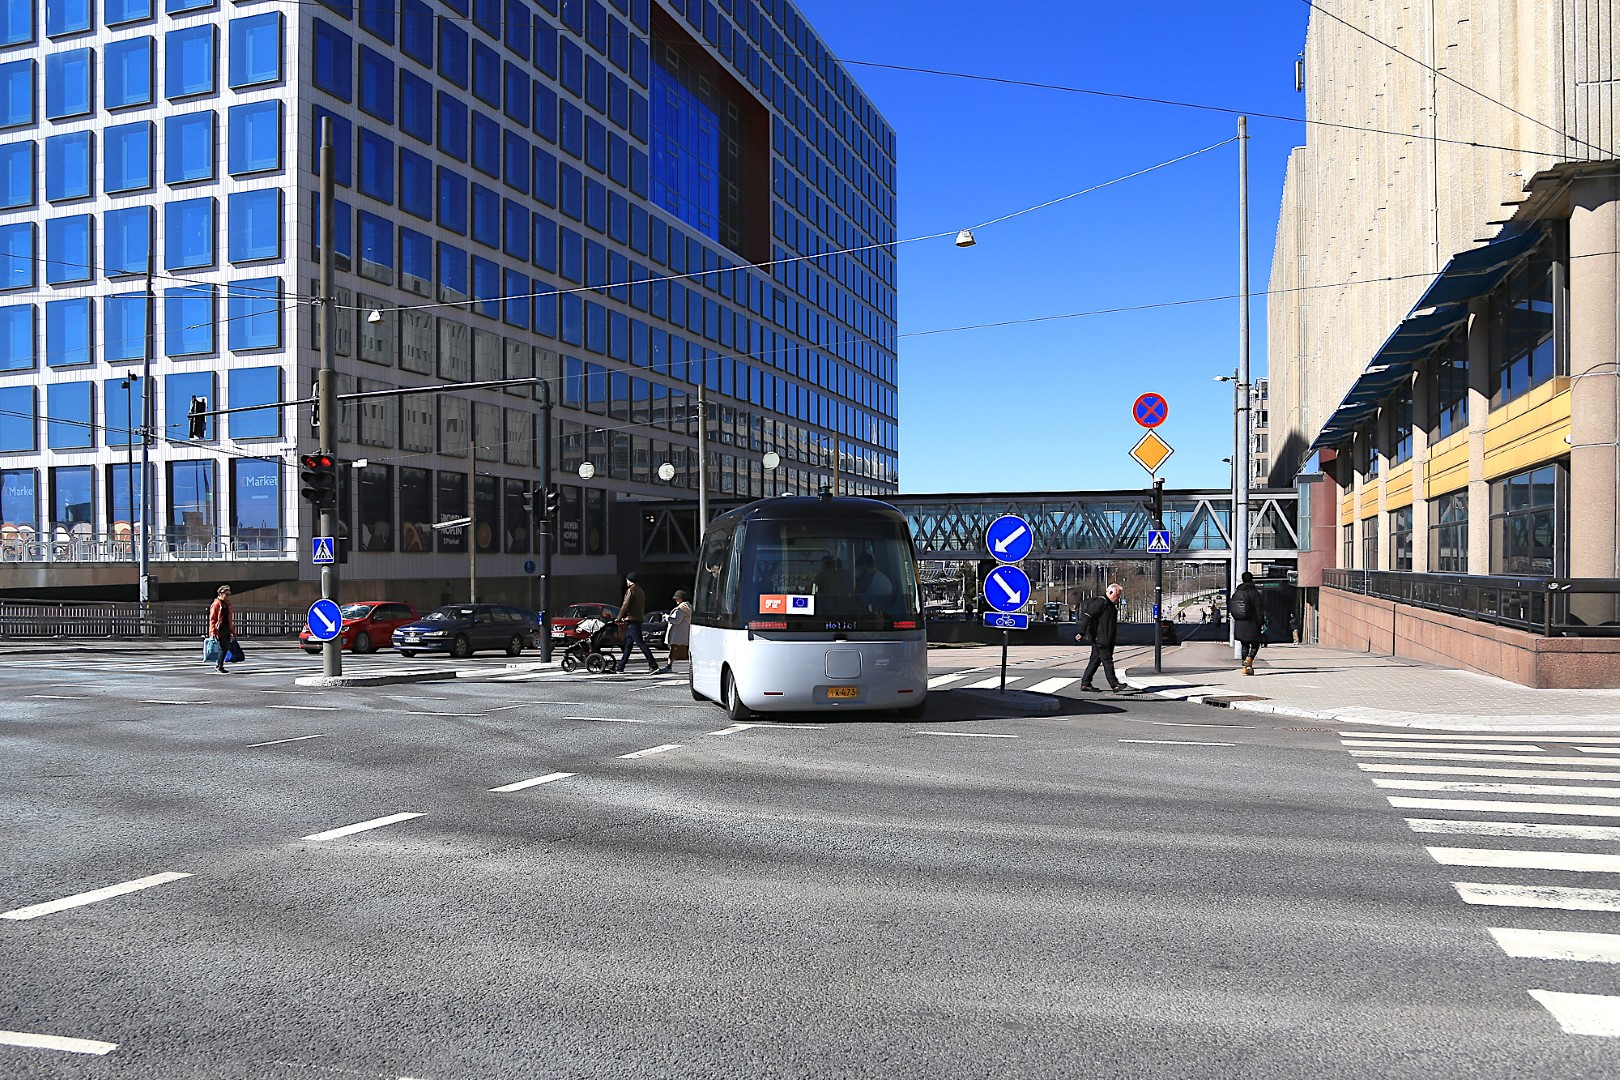 The driverless bus in traffic in Helsinki's Pasila district. Picture: Forum Virium Helsinki